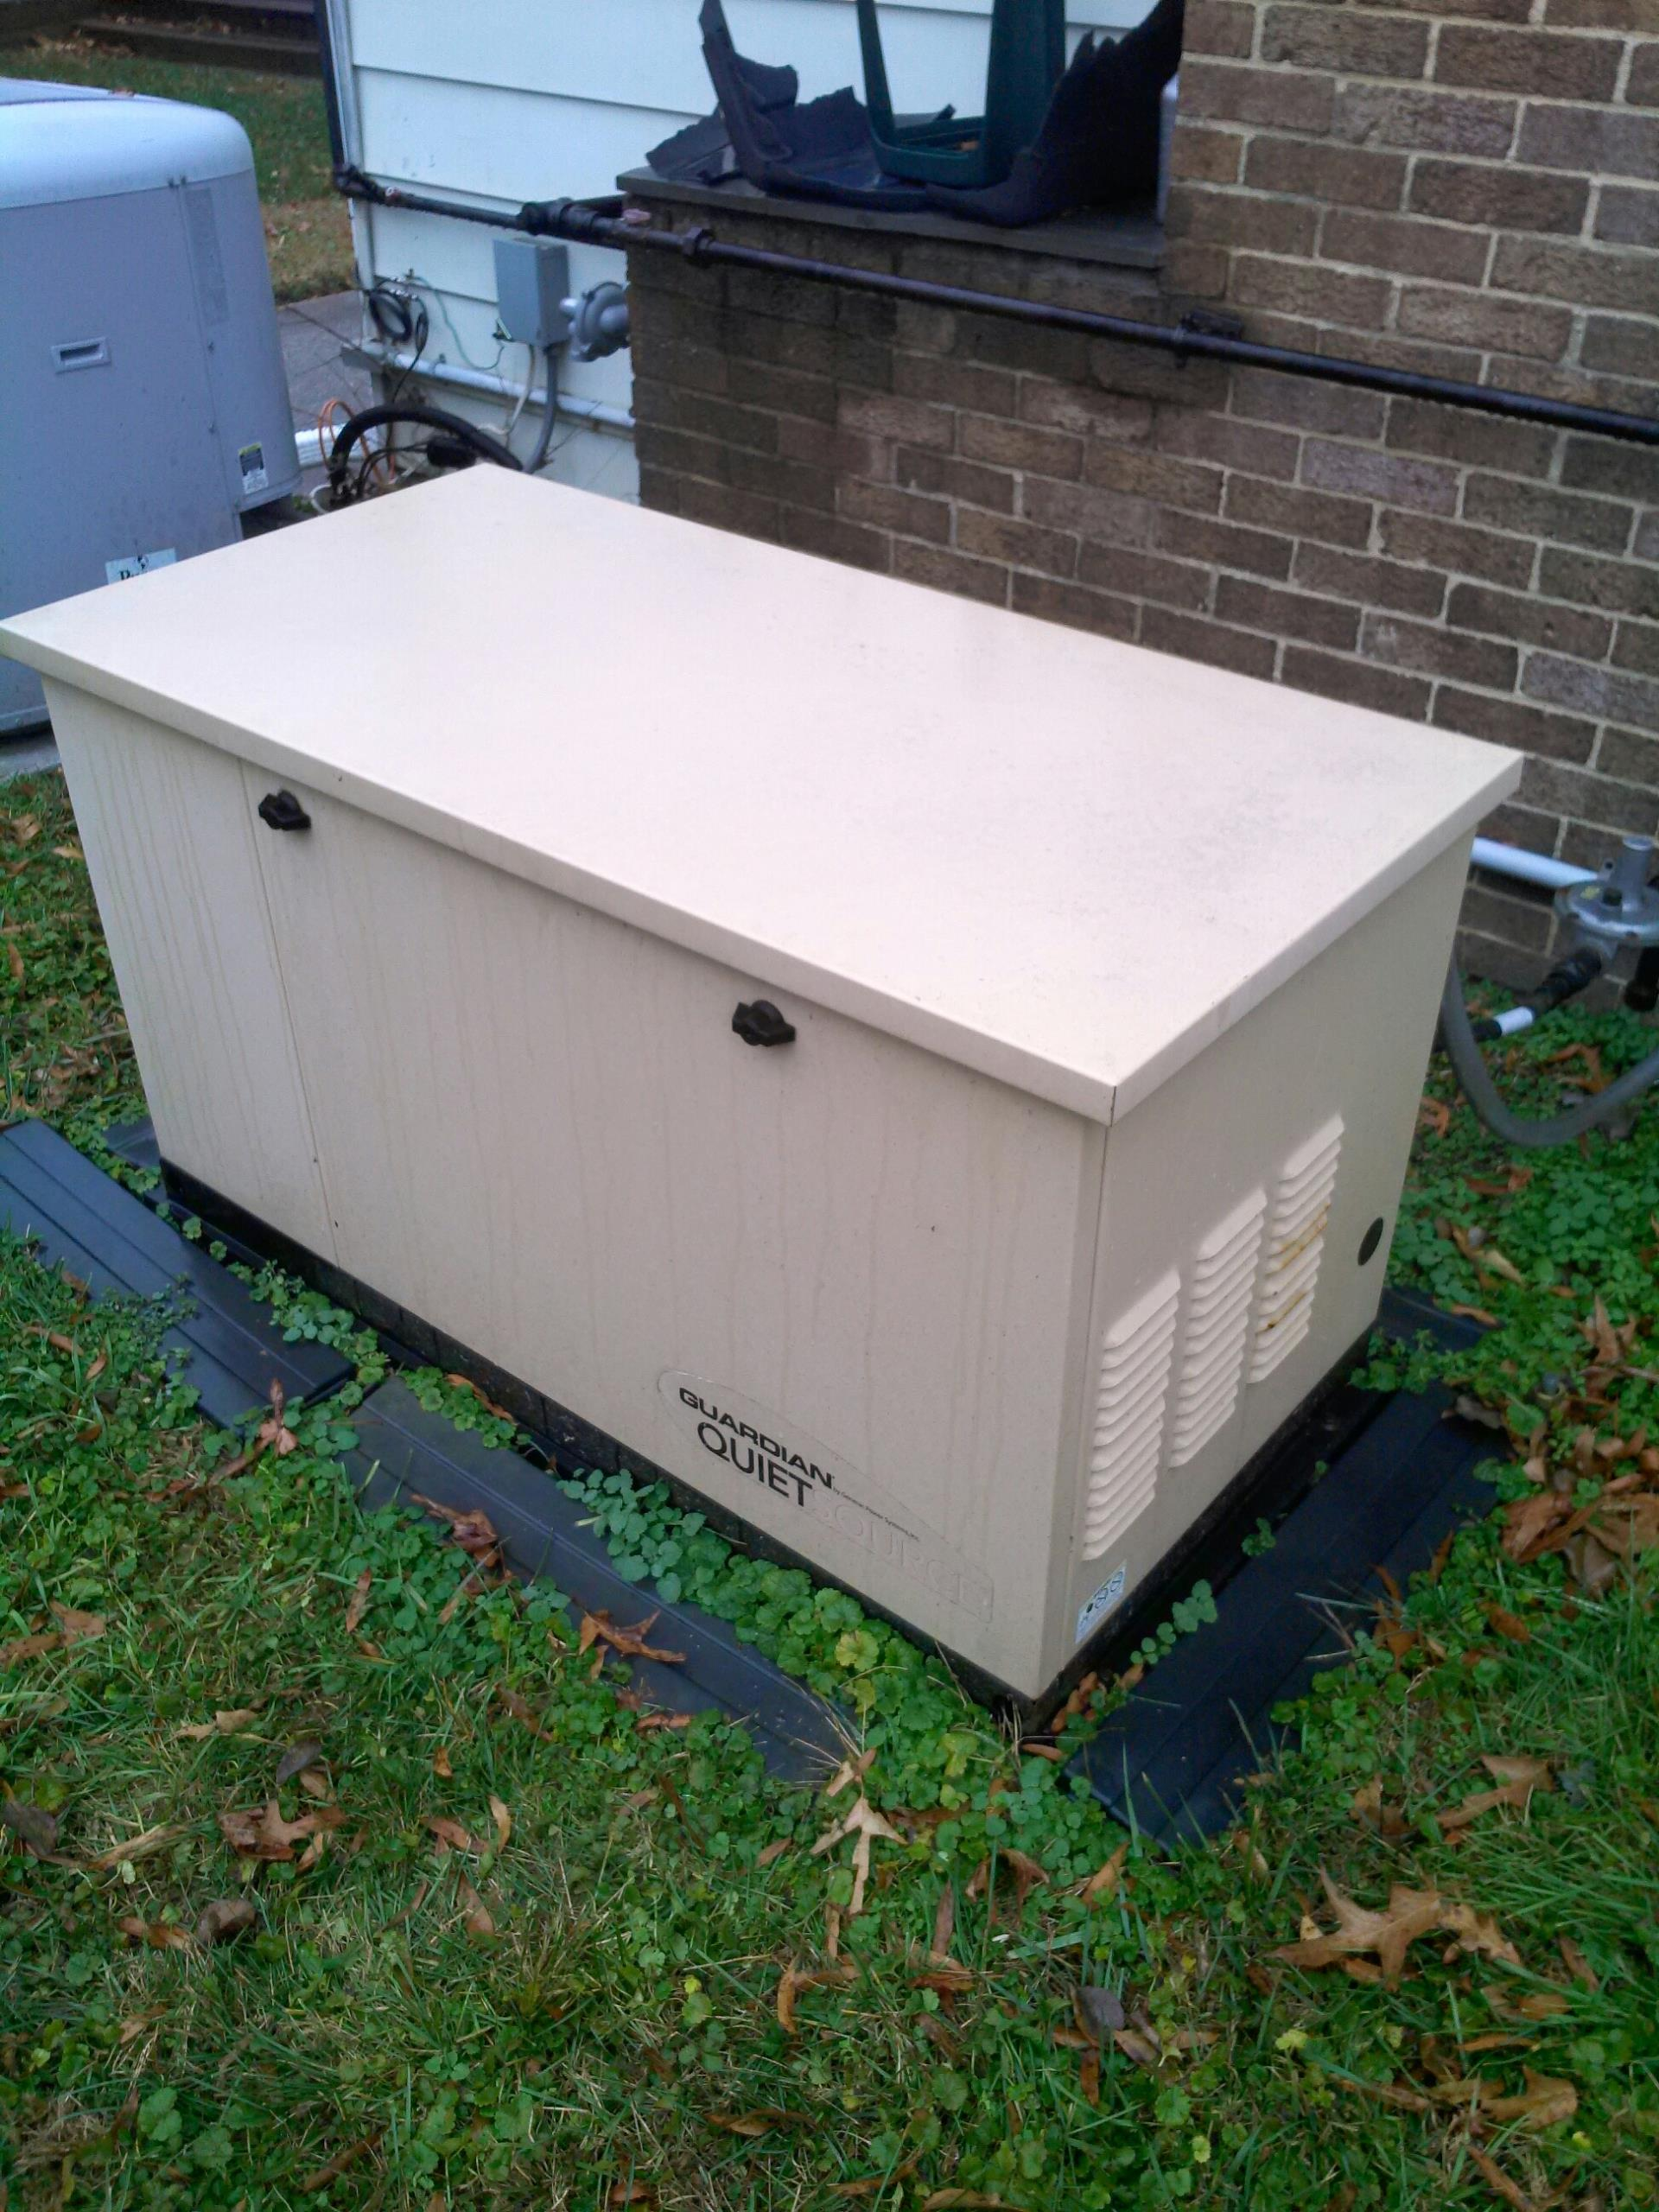 Goddard, MD - Goddard Maryland standby backup generator installation repair service call.